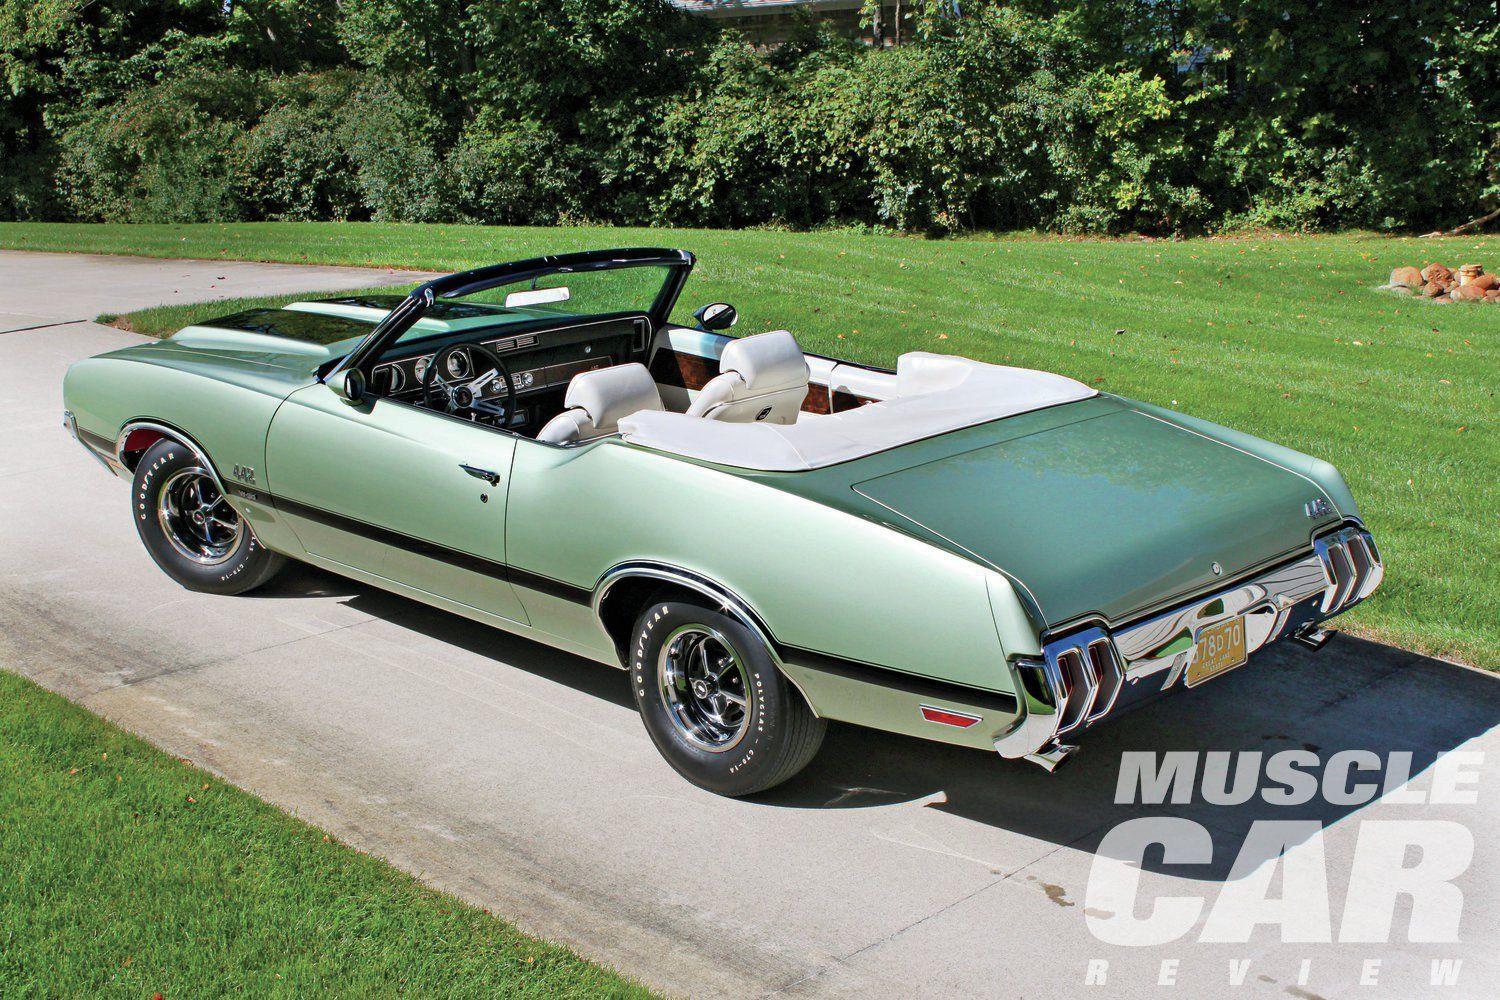 1970 Oldsmobile 442 Ultimate Olds Muscle Car Review Hot Rod Network Old Muscle Cars Oldsmobile Oldsmobile 442